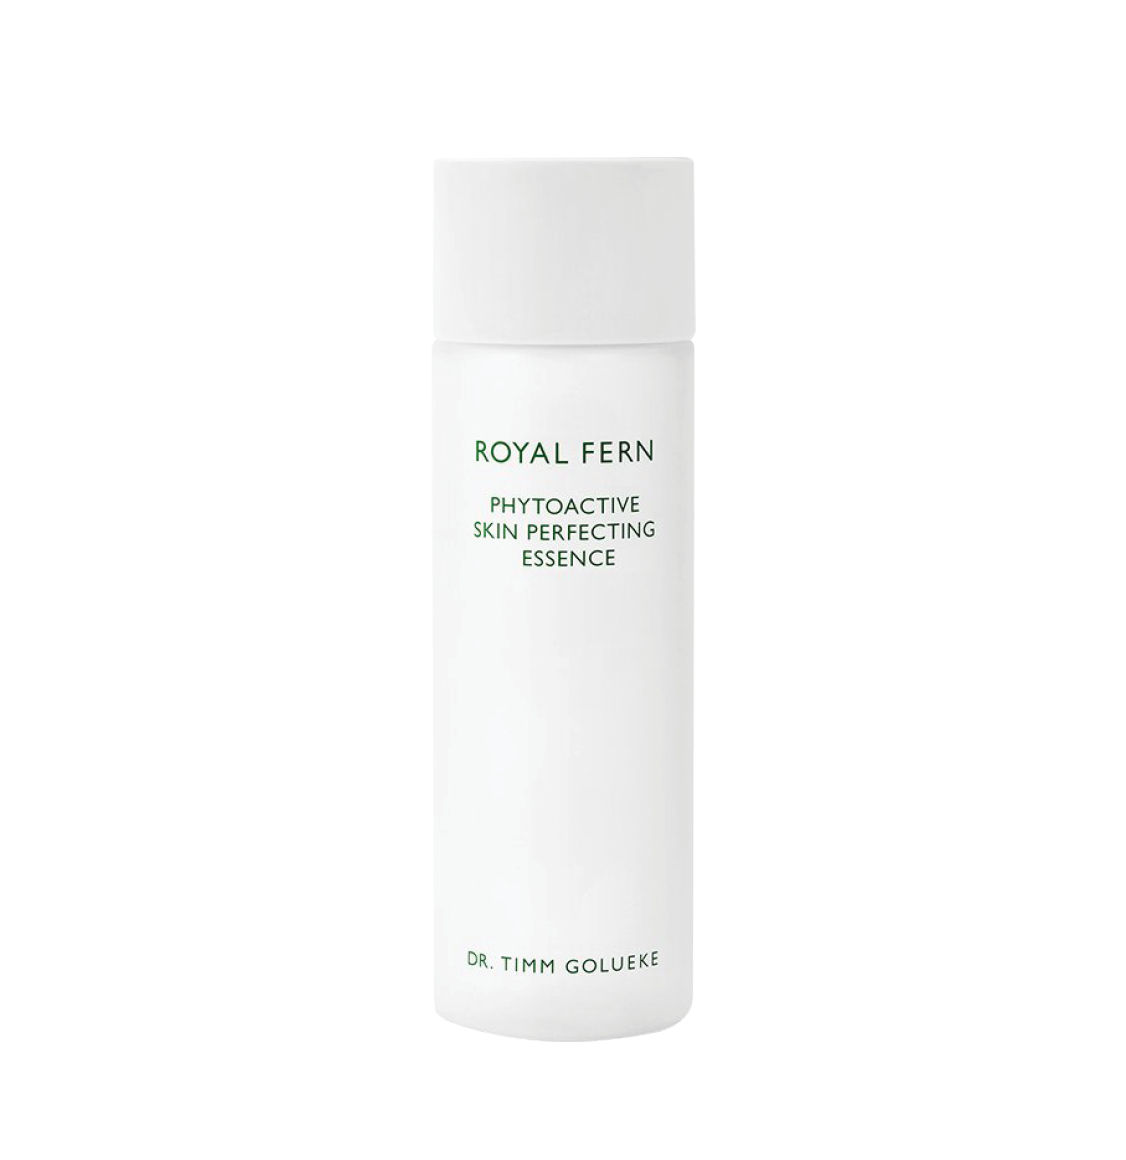 Royal Fern Phytoactive Skin Perfecting Essence 200ml